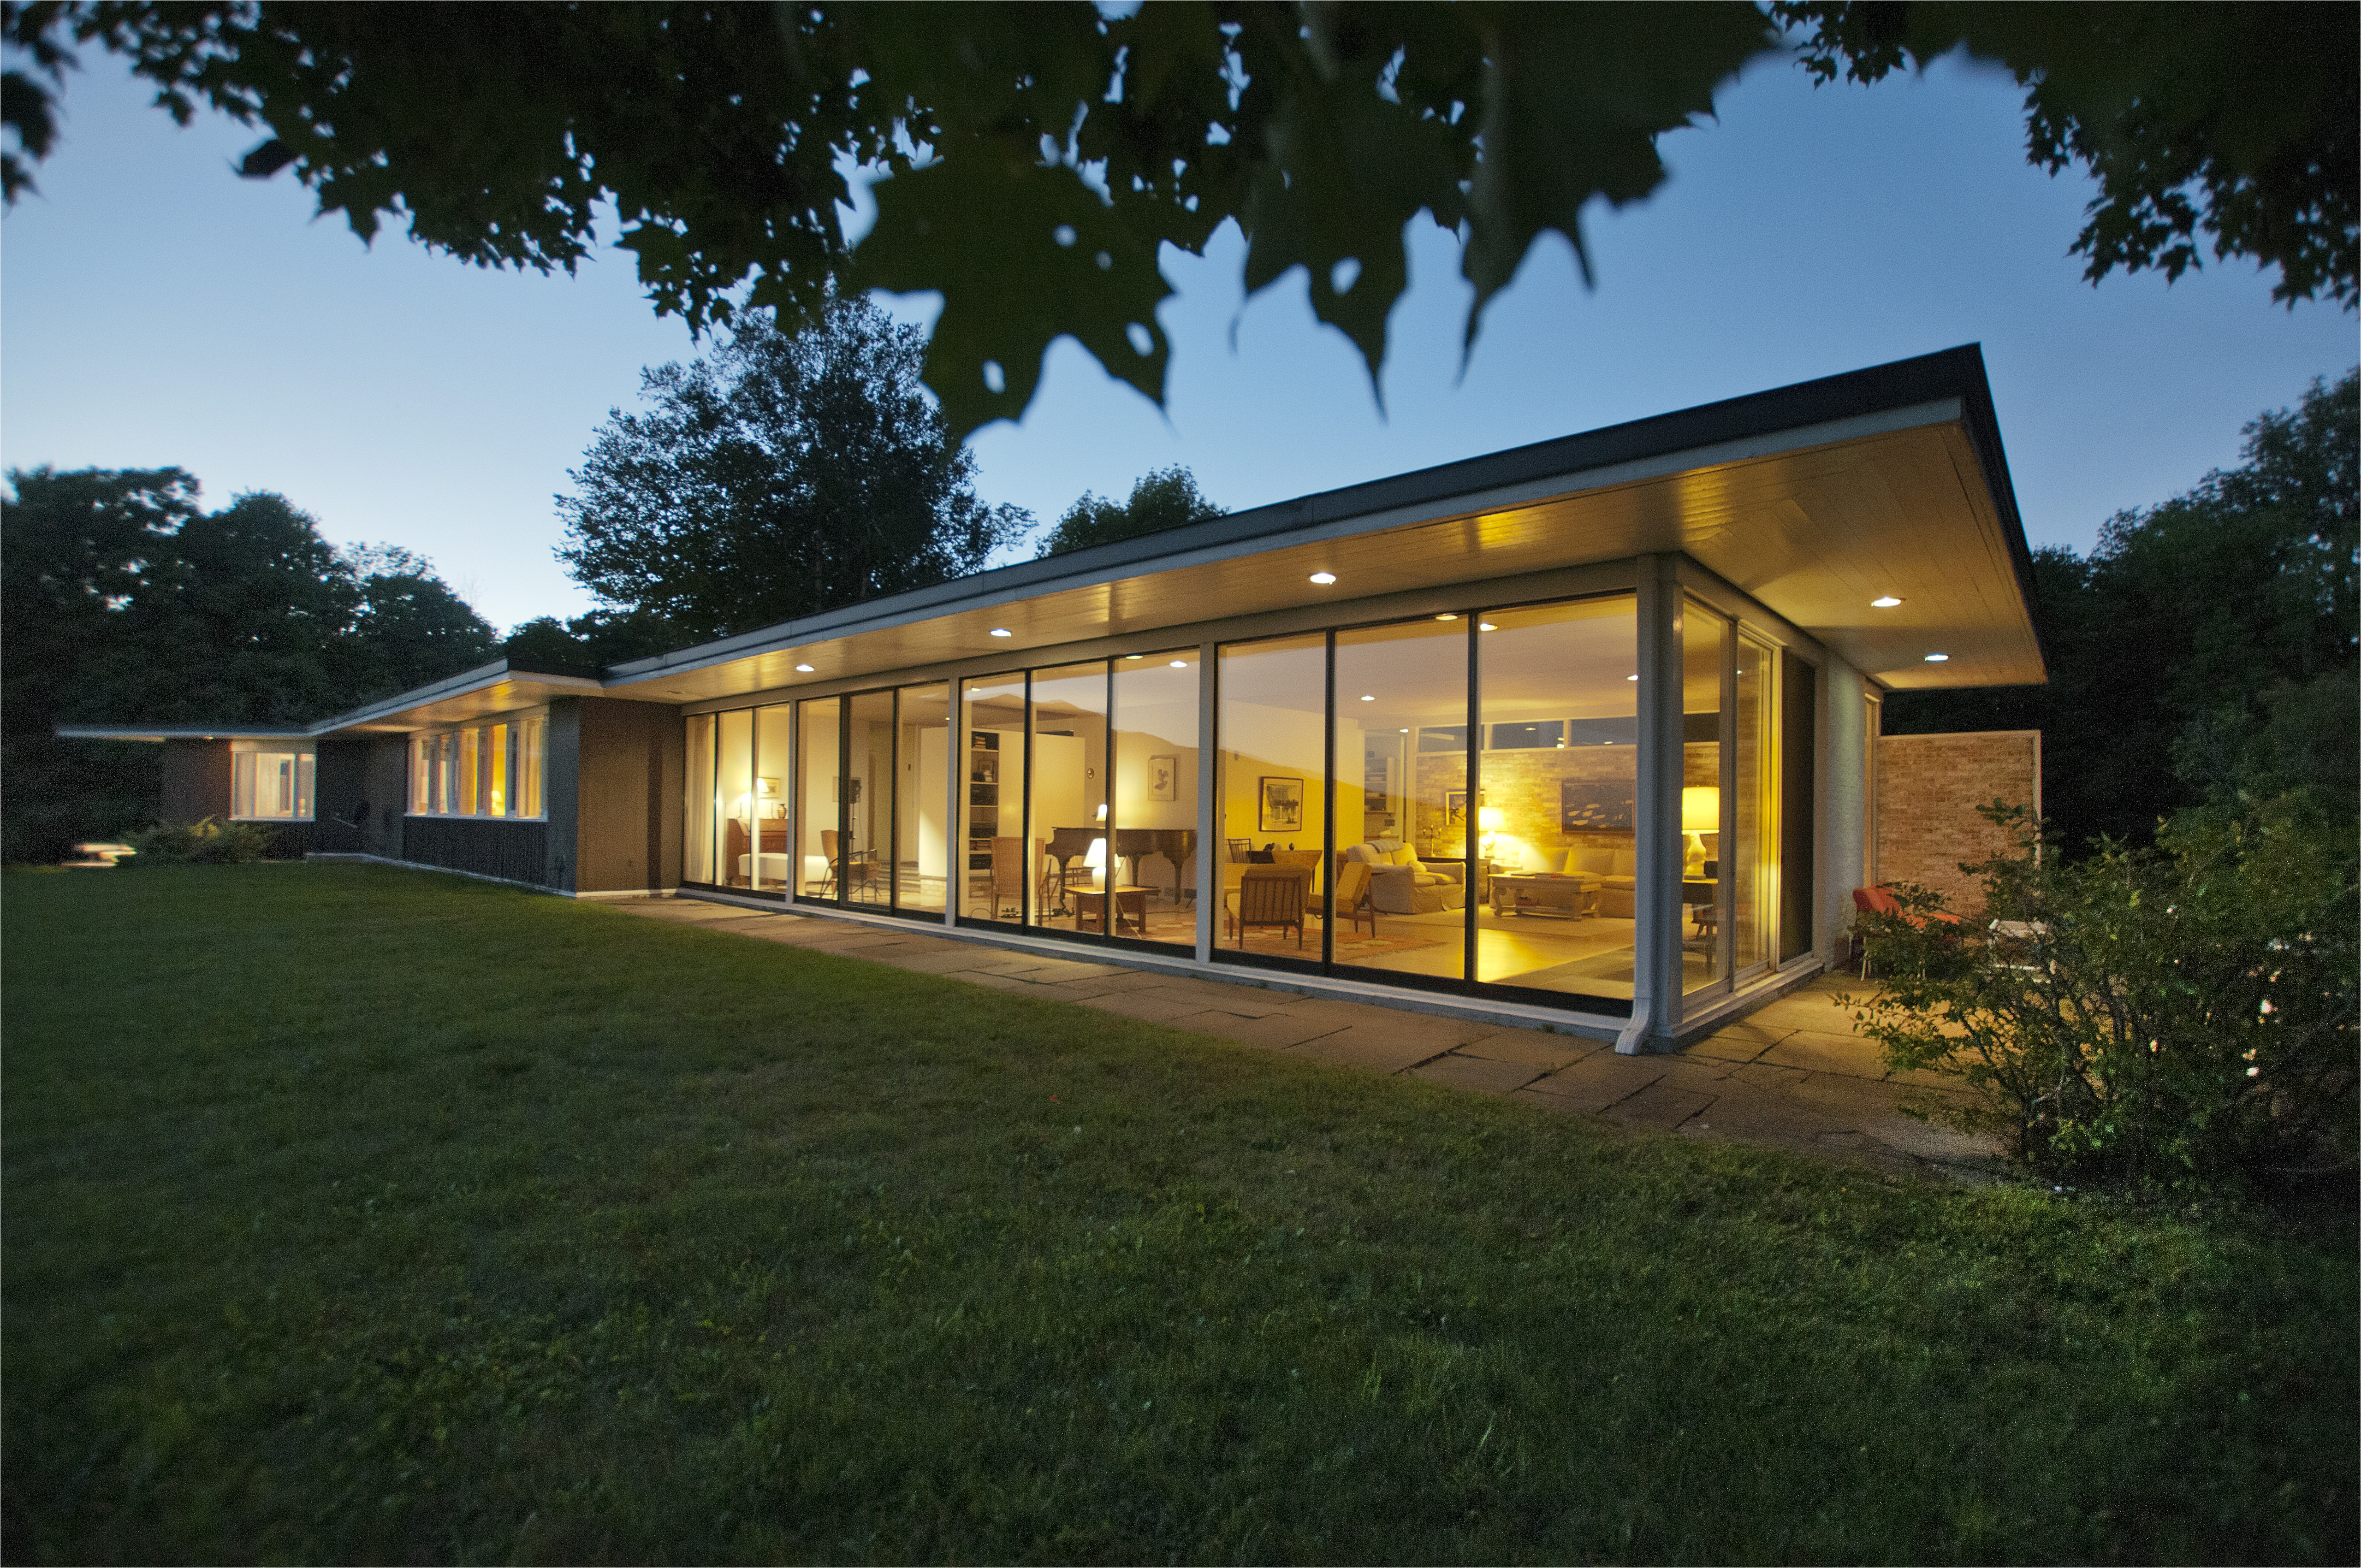 midcentury modern on 135 acres asks 1 2m